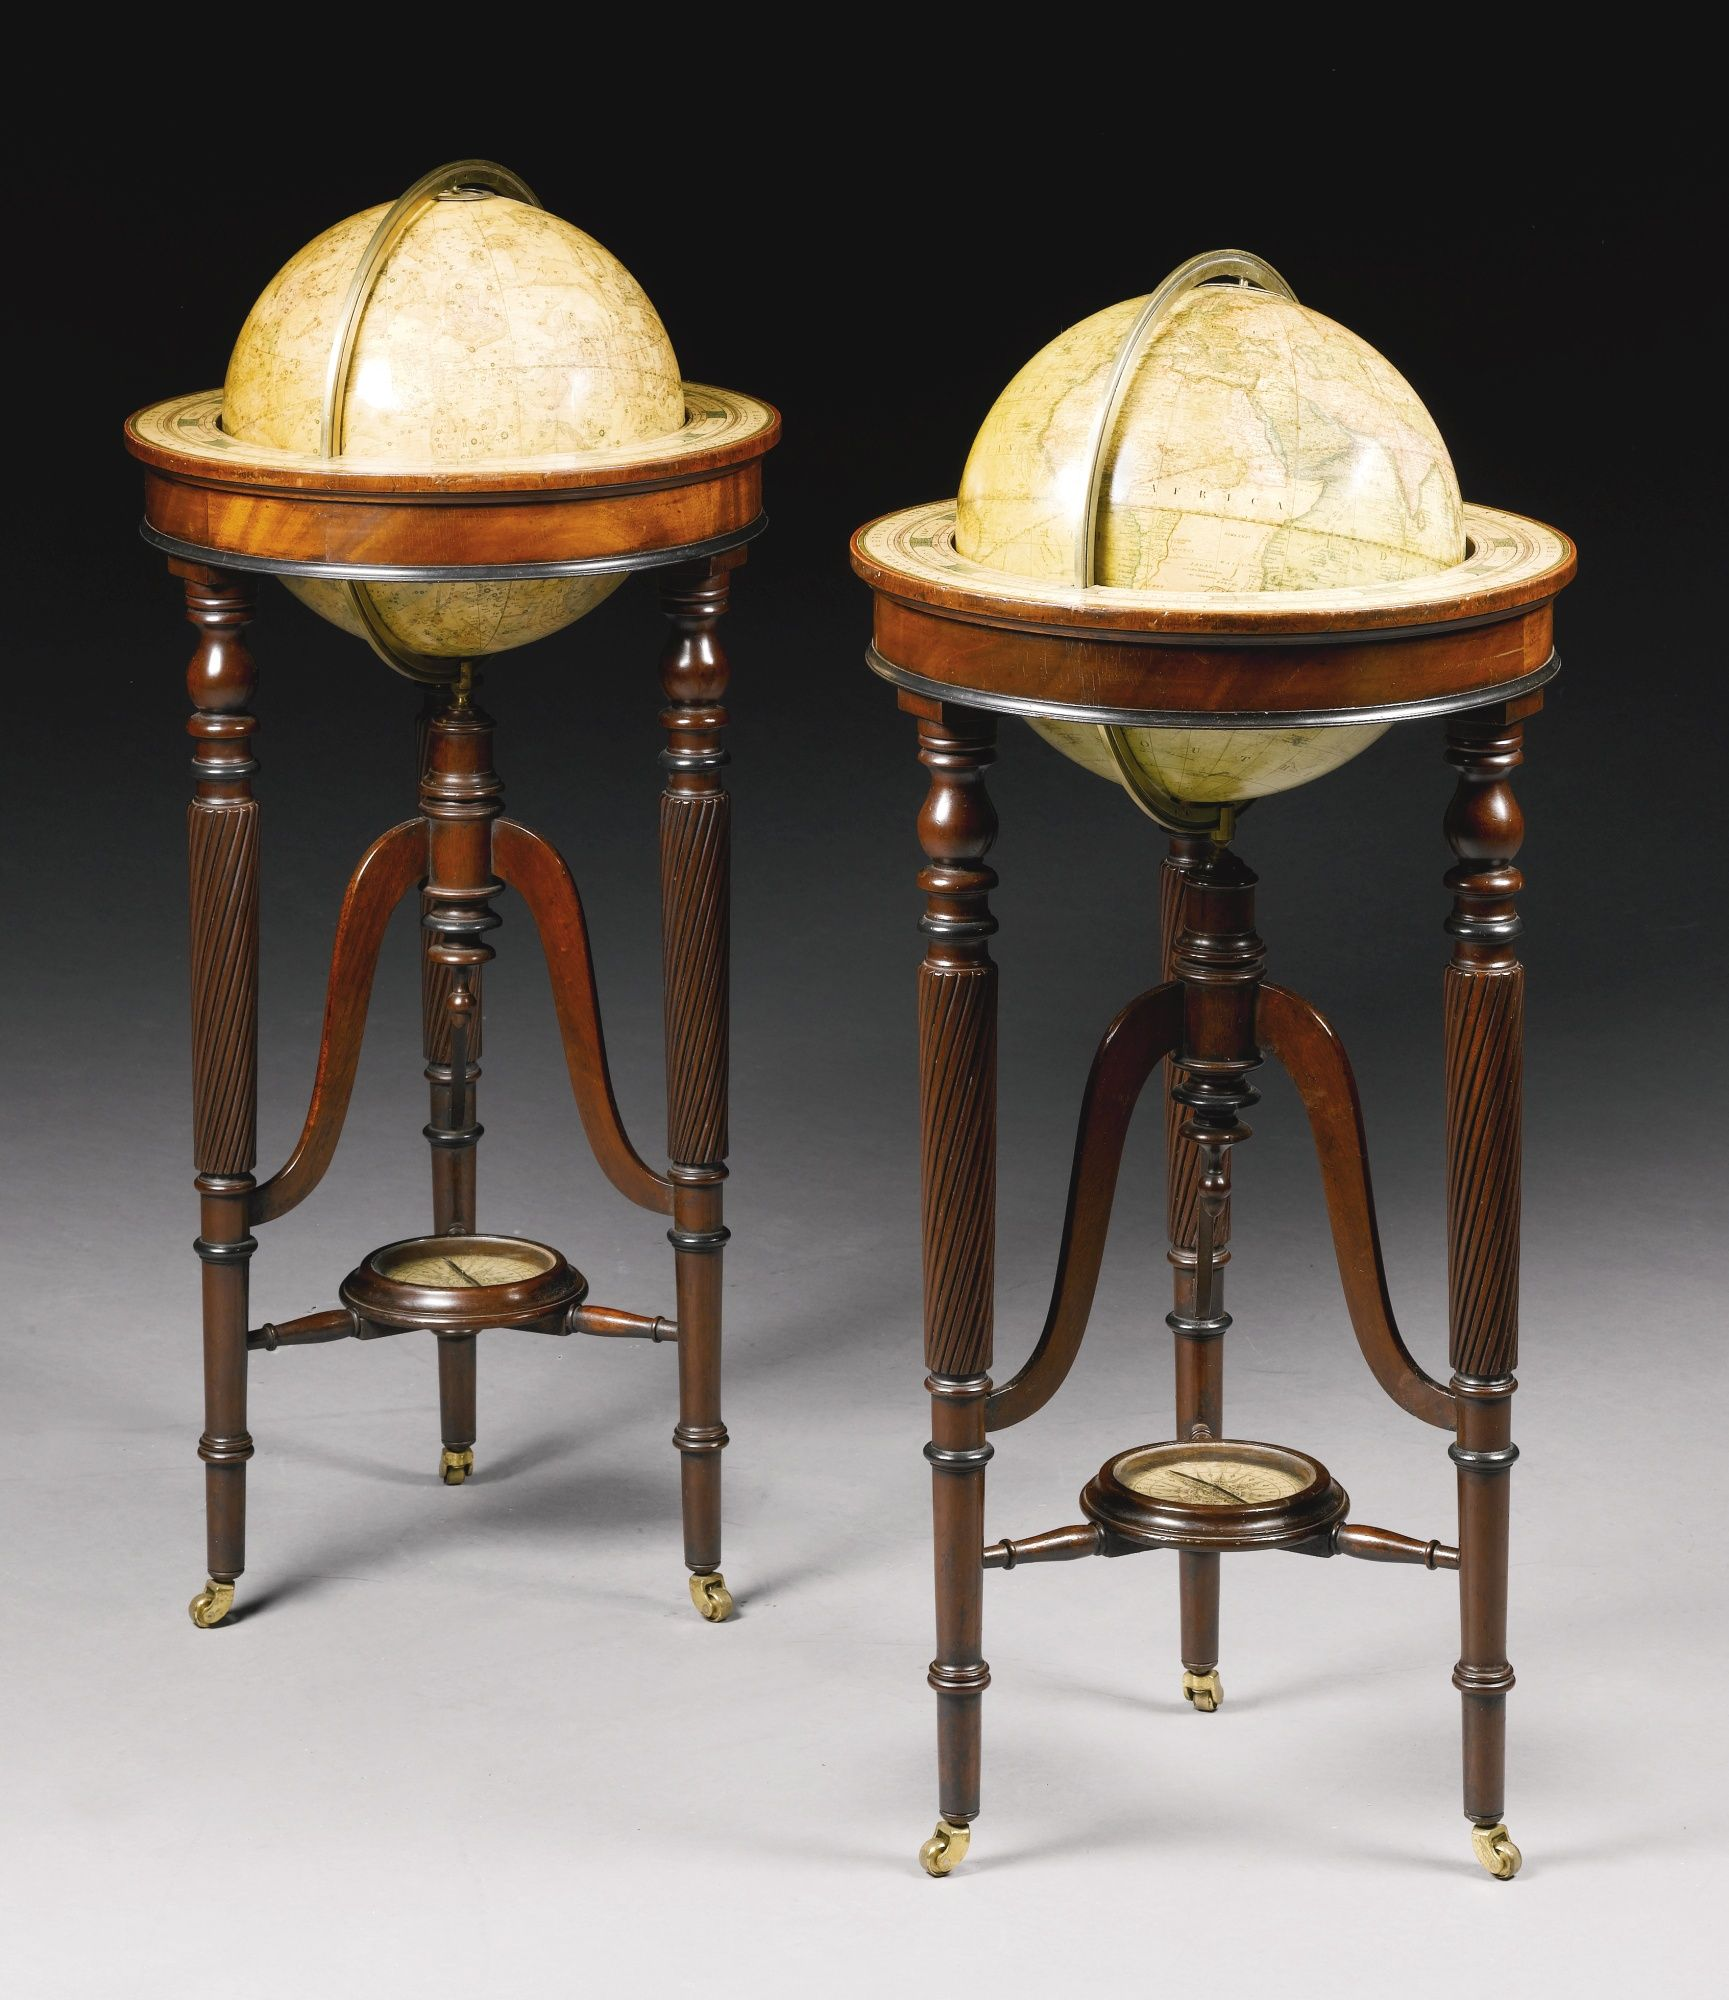 A pair of Regency Cary's 12 inch terrestrial & Celestial Globes<br>early 19th century | lot | Sotheby's